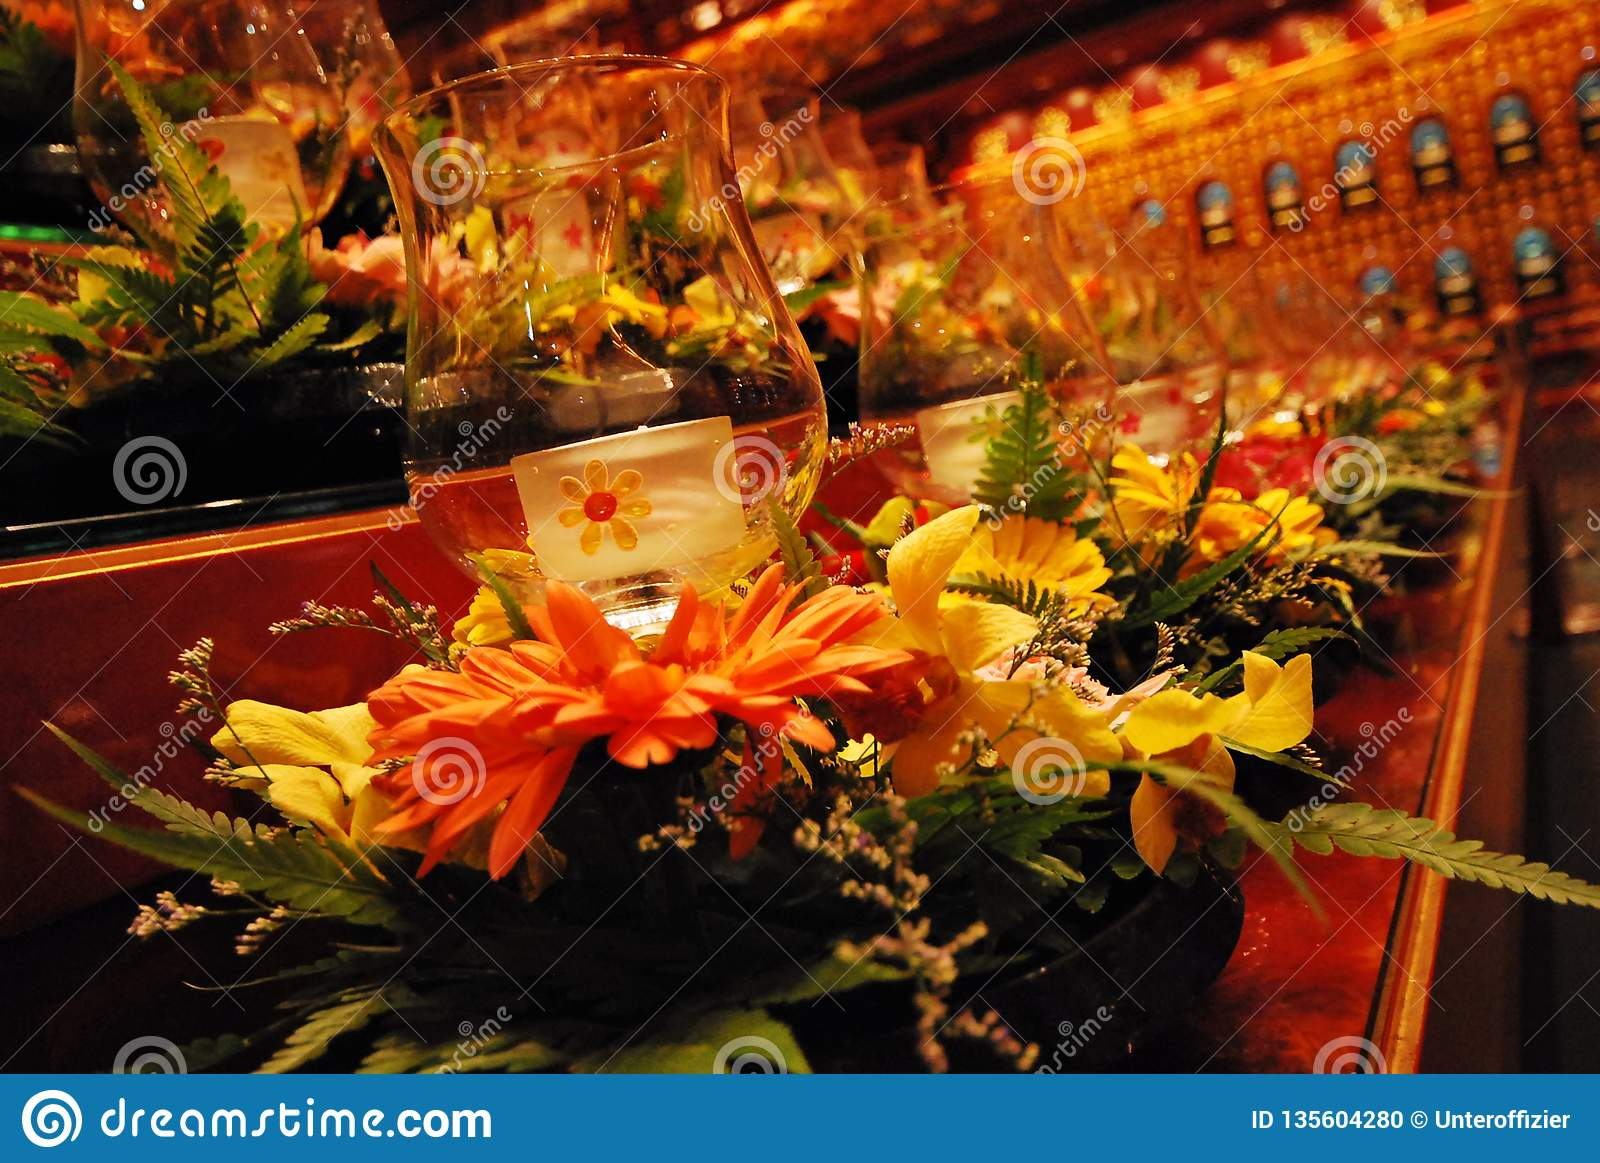 Glass candle holders at an altar bathed in amber interior lights